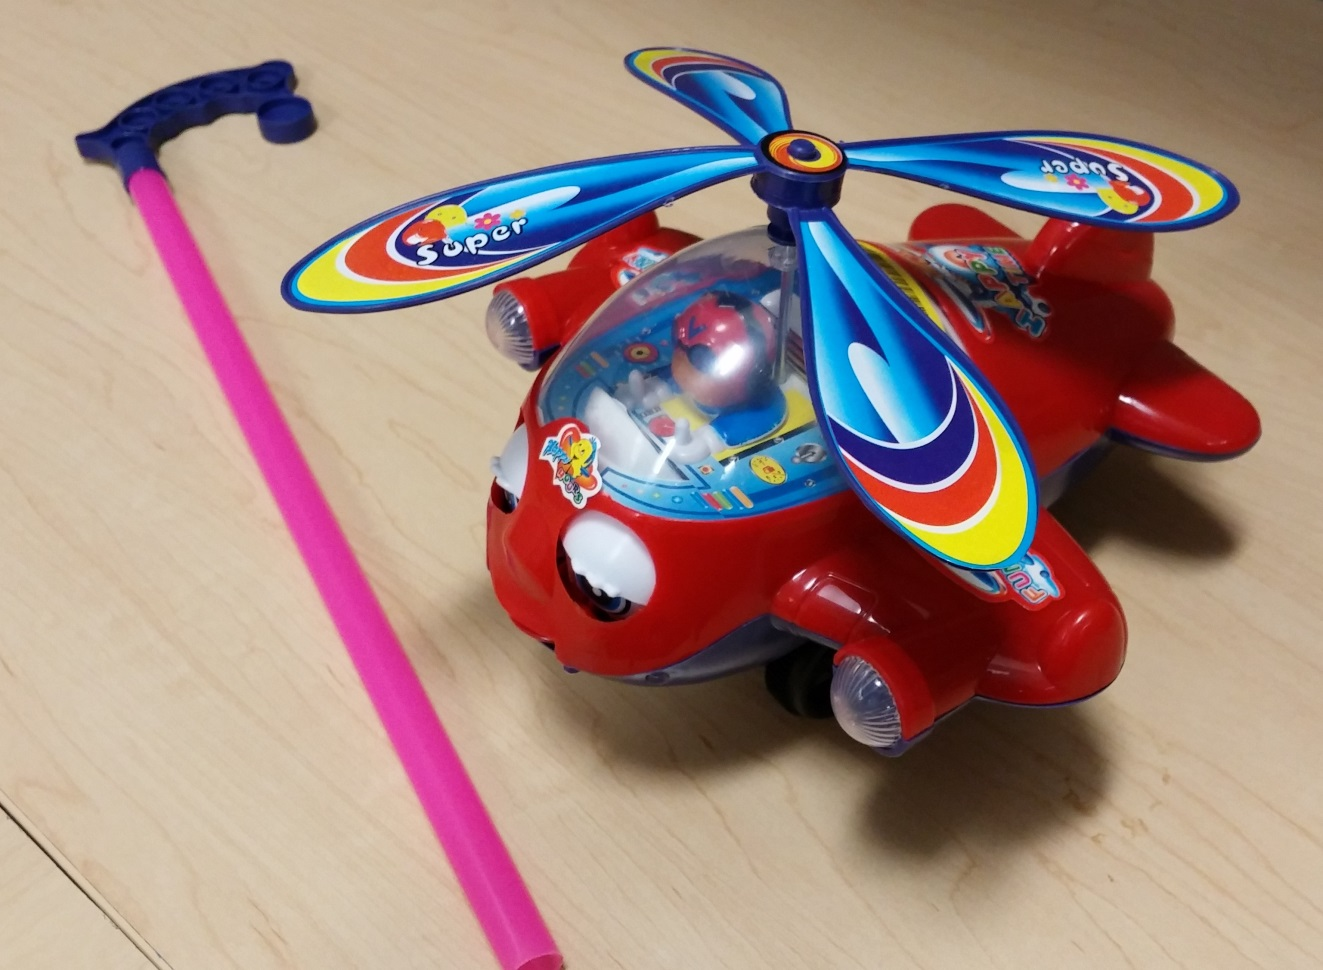 Airplane and Butterfly Push Toys Recalled by LS Import ...